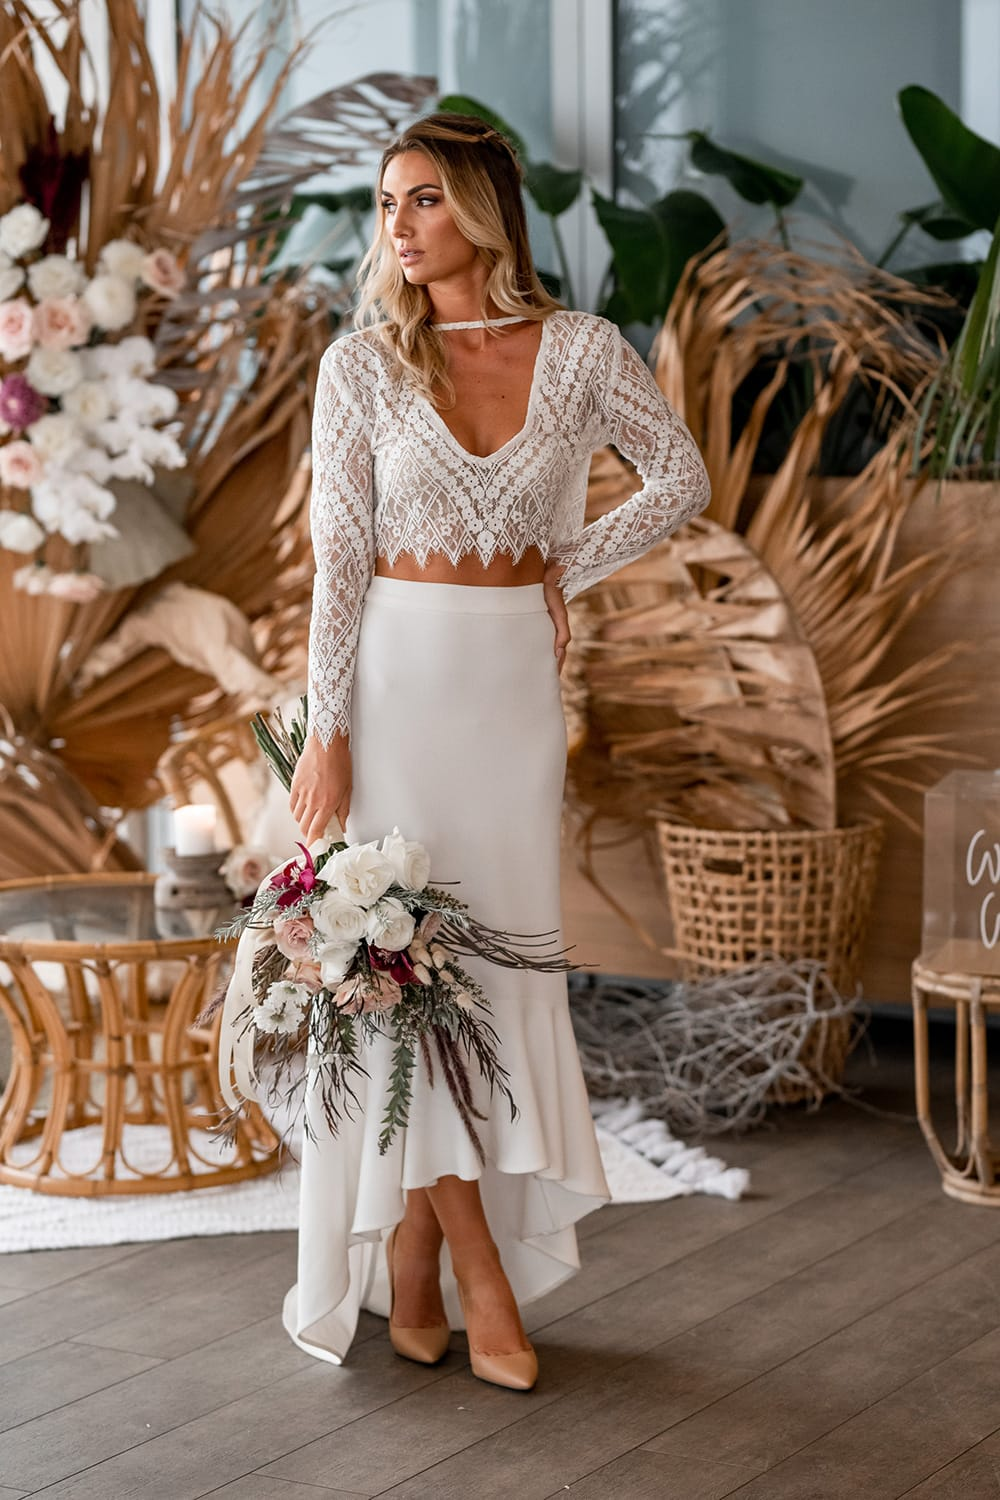 Natural Boho Beach Wedding Inspiration | Photography: Michael Boyle Photography